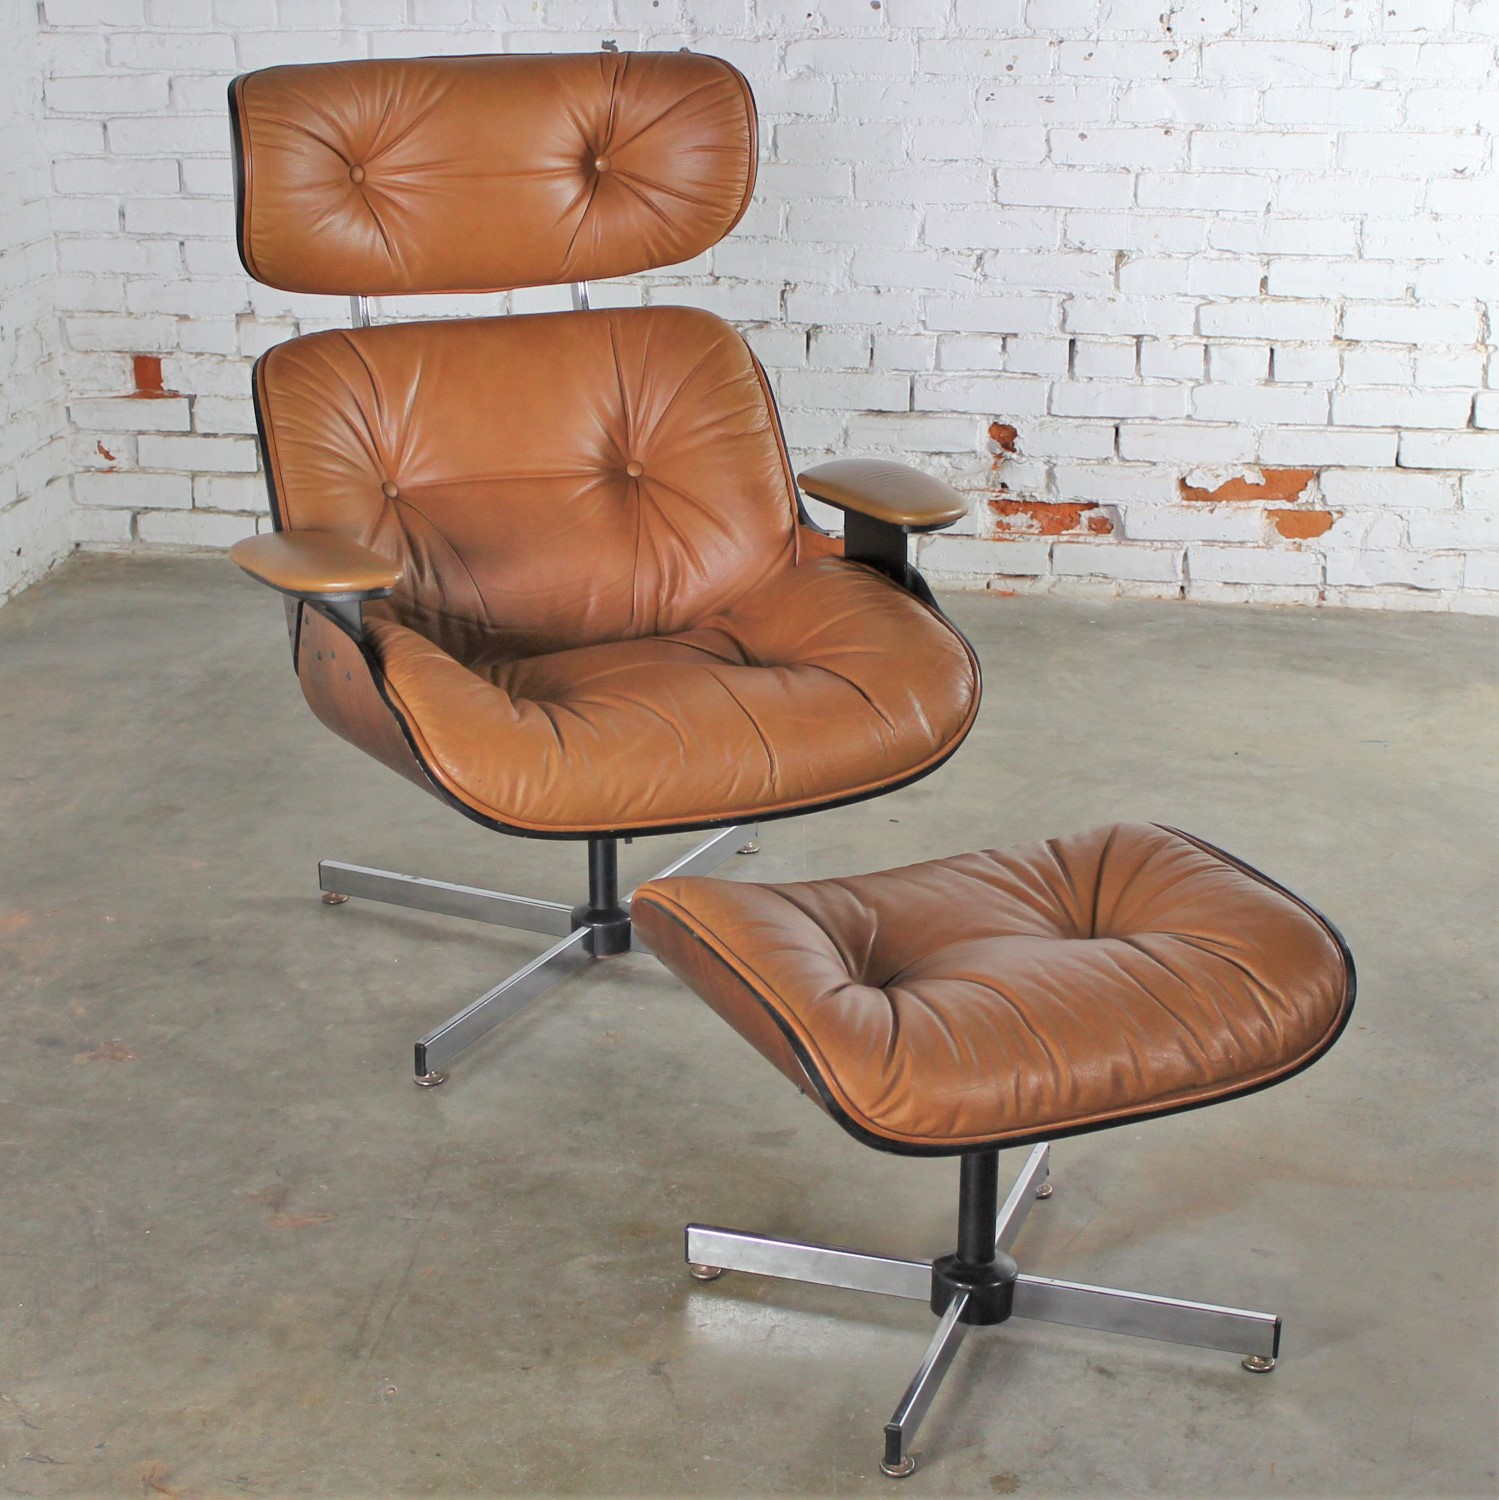 Astounding Mid Century Modern Plycraft Eames Style Lounge Chair Pabps2019 Chair Design Images Pabps2019Com